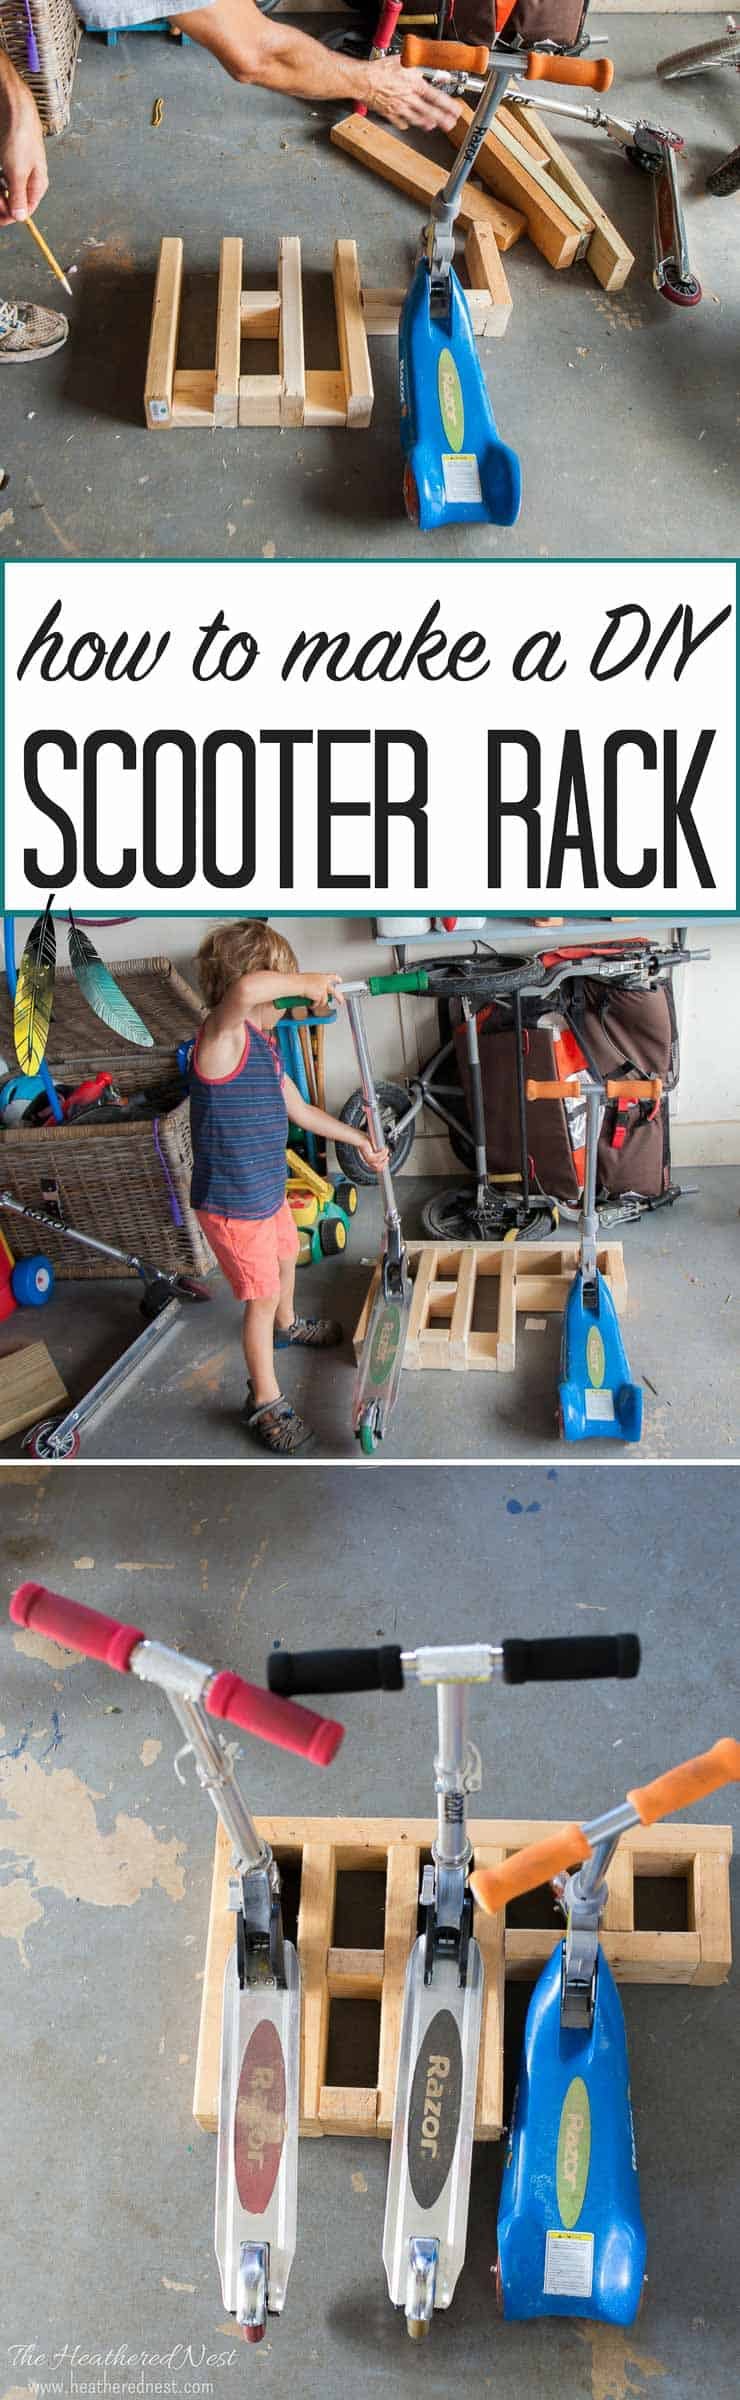 how to build an easy DIY scooter rack to organize the kids ride-on toys!